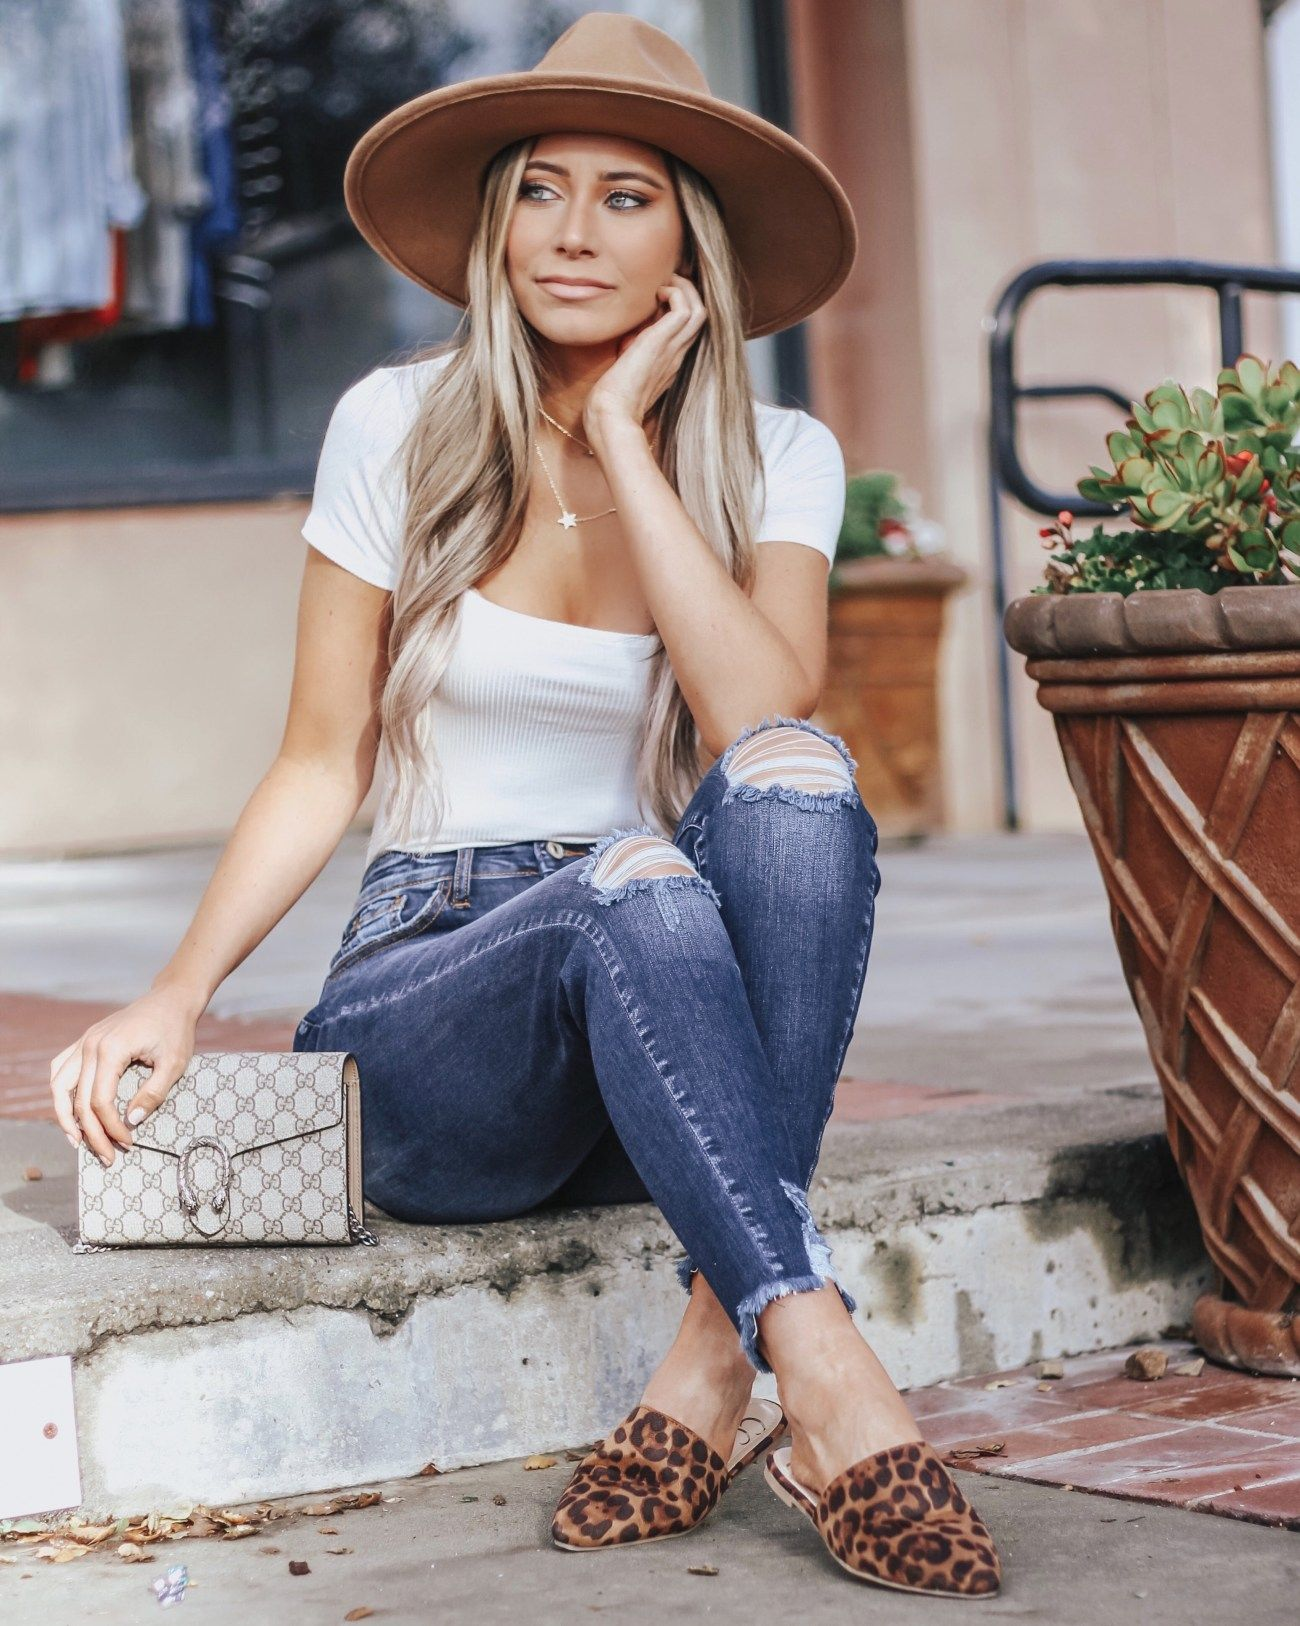 Chic & Simple Vici Outfit | FASHION | Fashion outfits ...